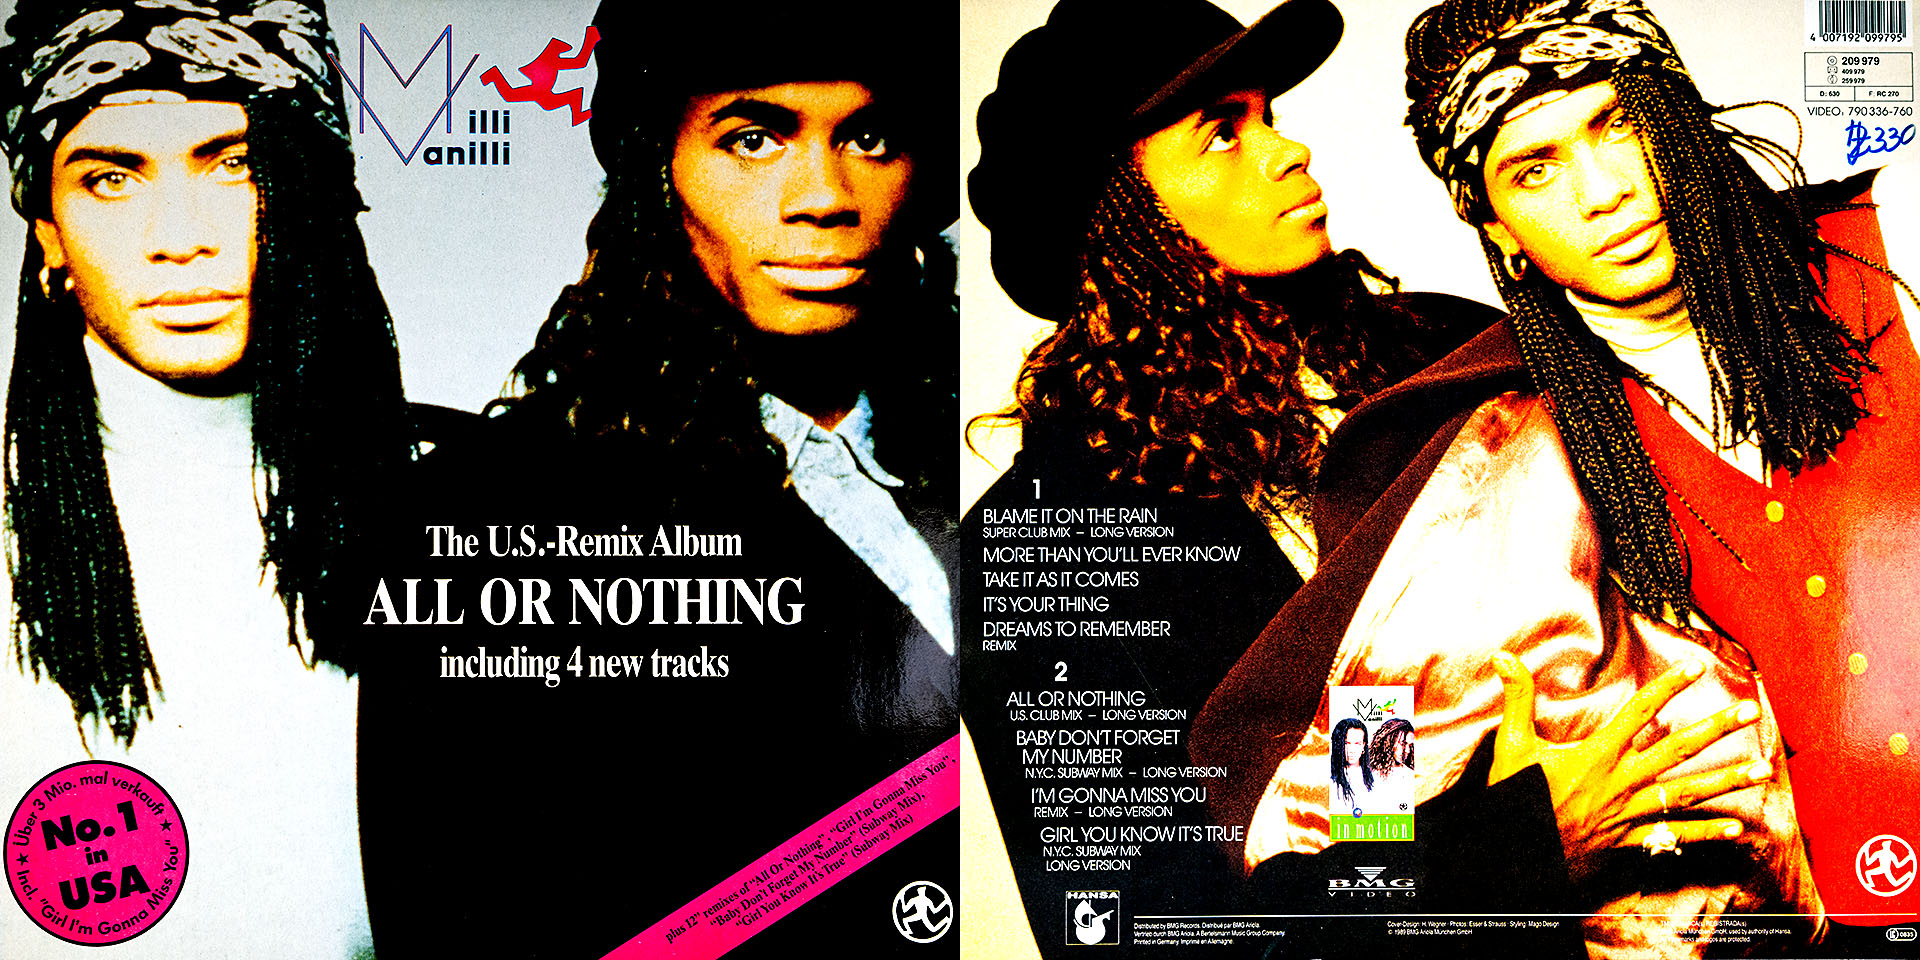 All Or Nothing - Milli Vanilli